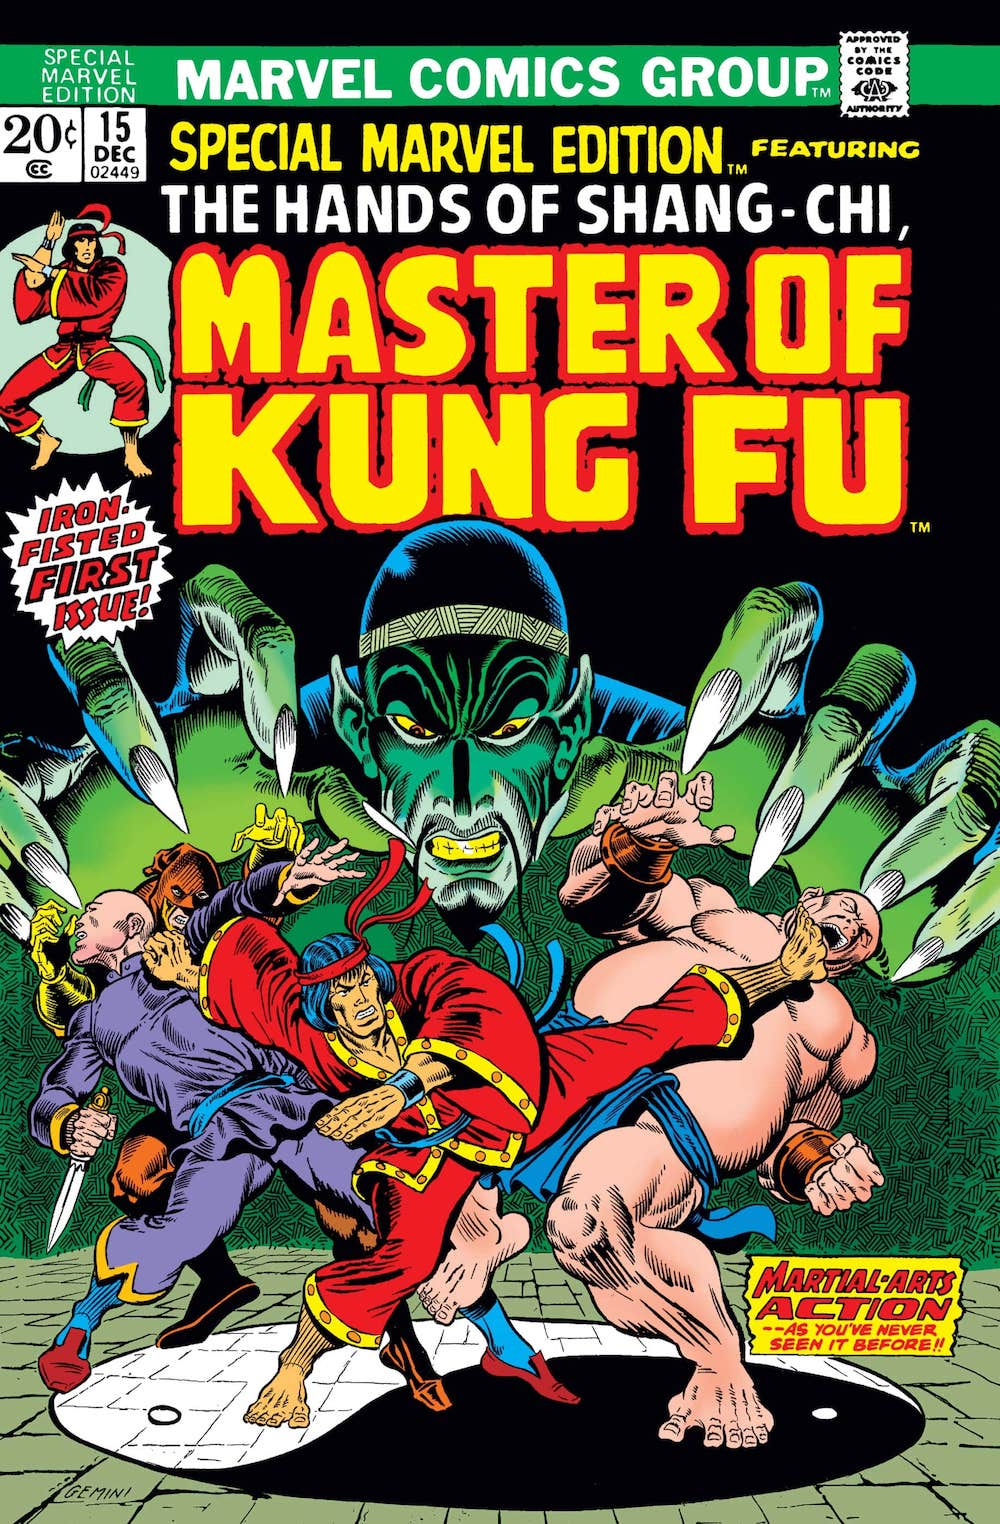 The First Appearance of Shang-Chi in Special Marvel Edition #15